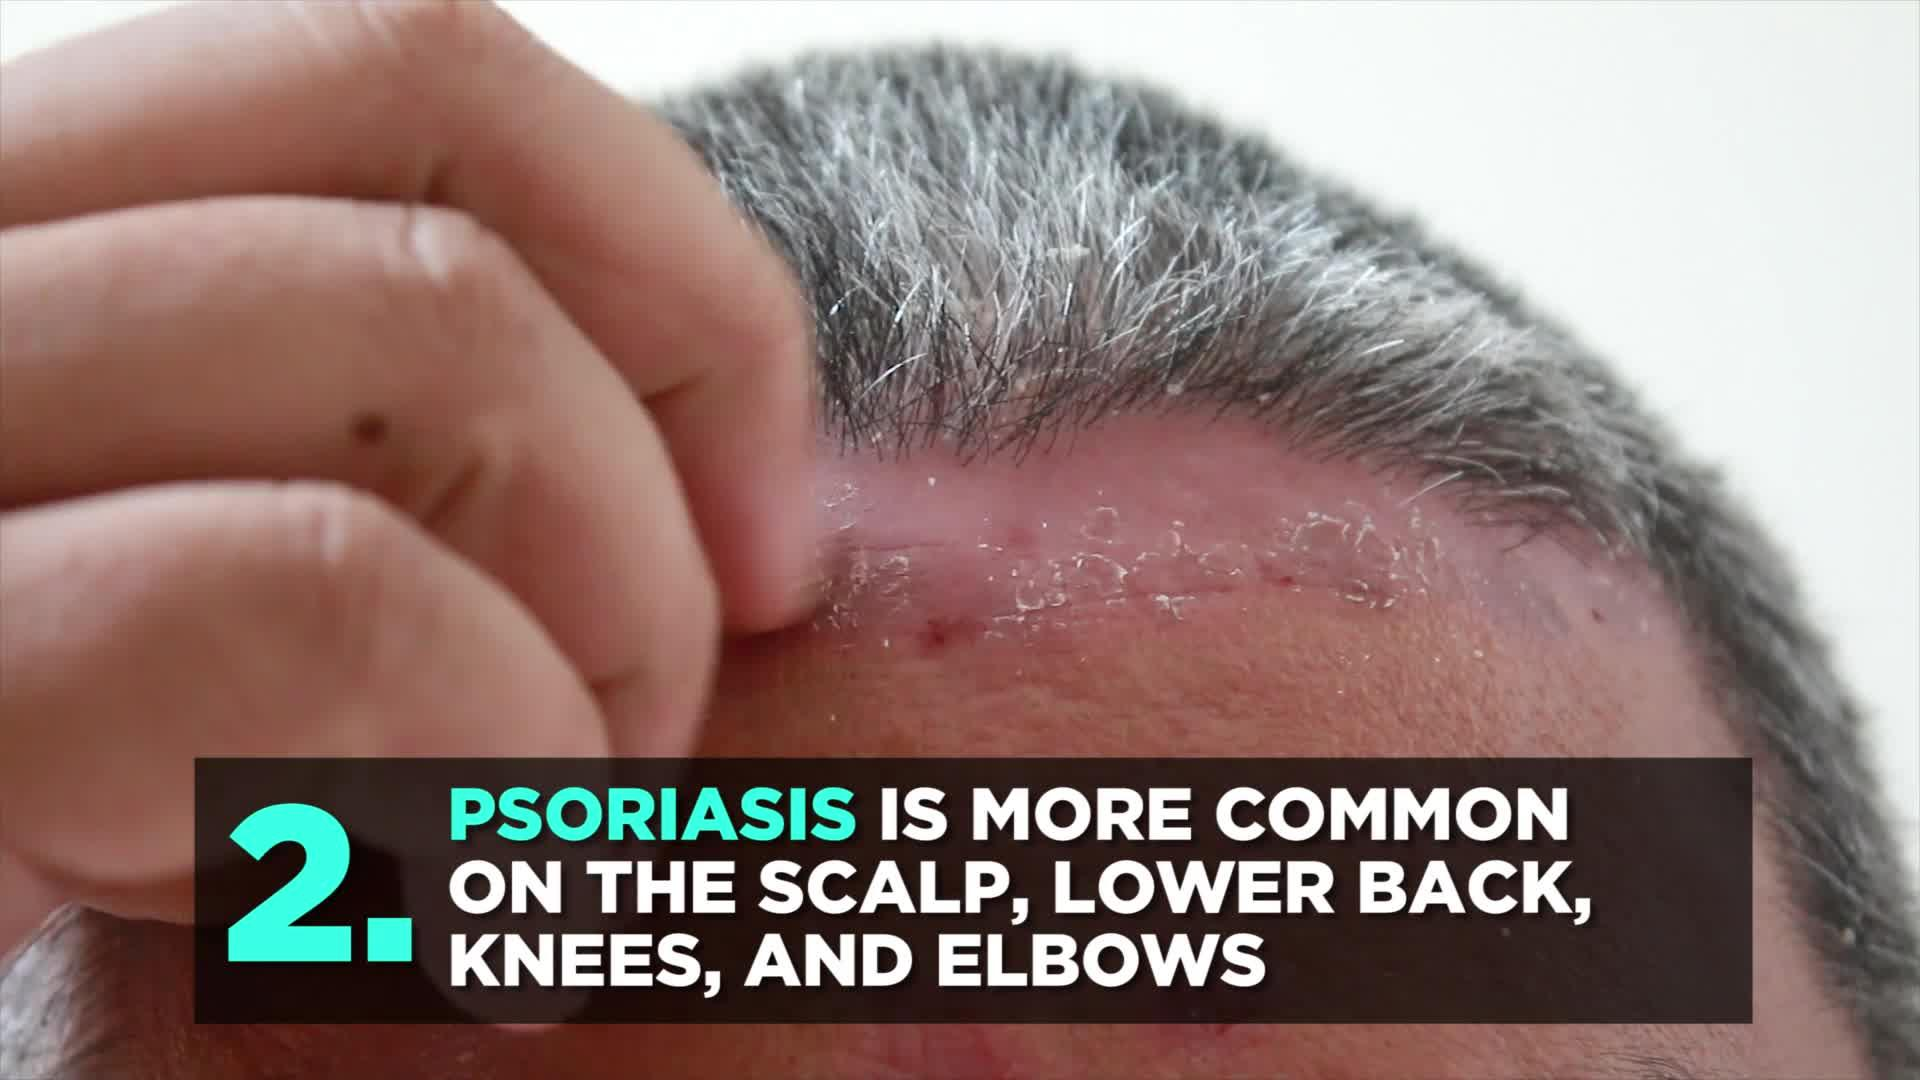 4 Things To Know About Scalp Psoriasis, According To Dermatologists